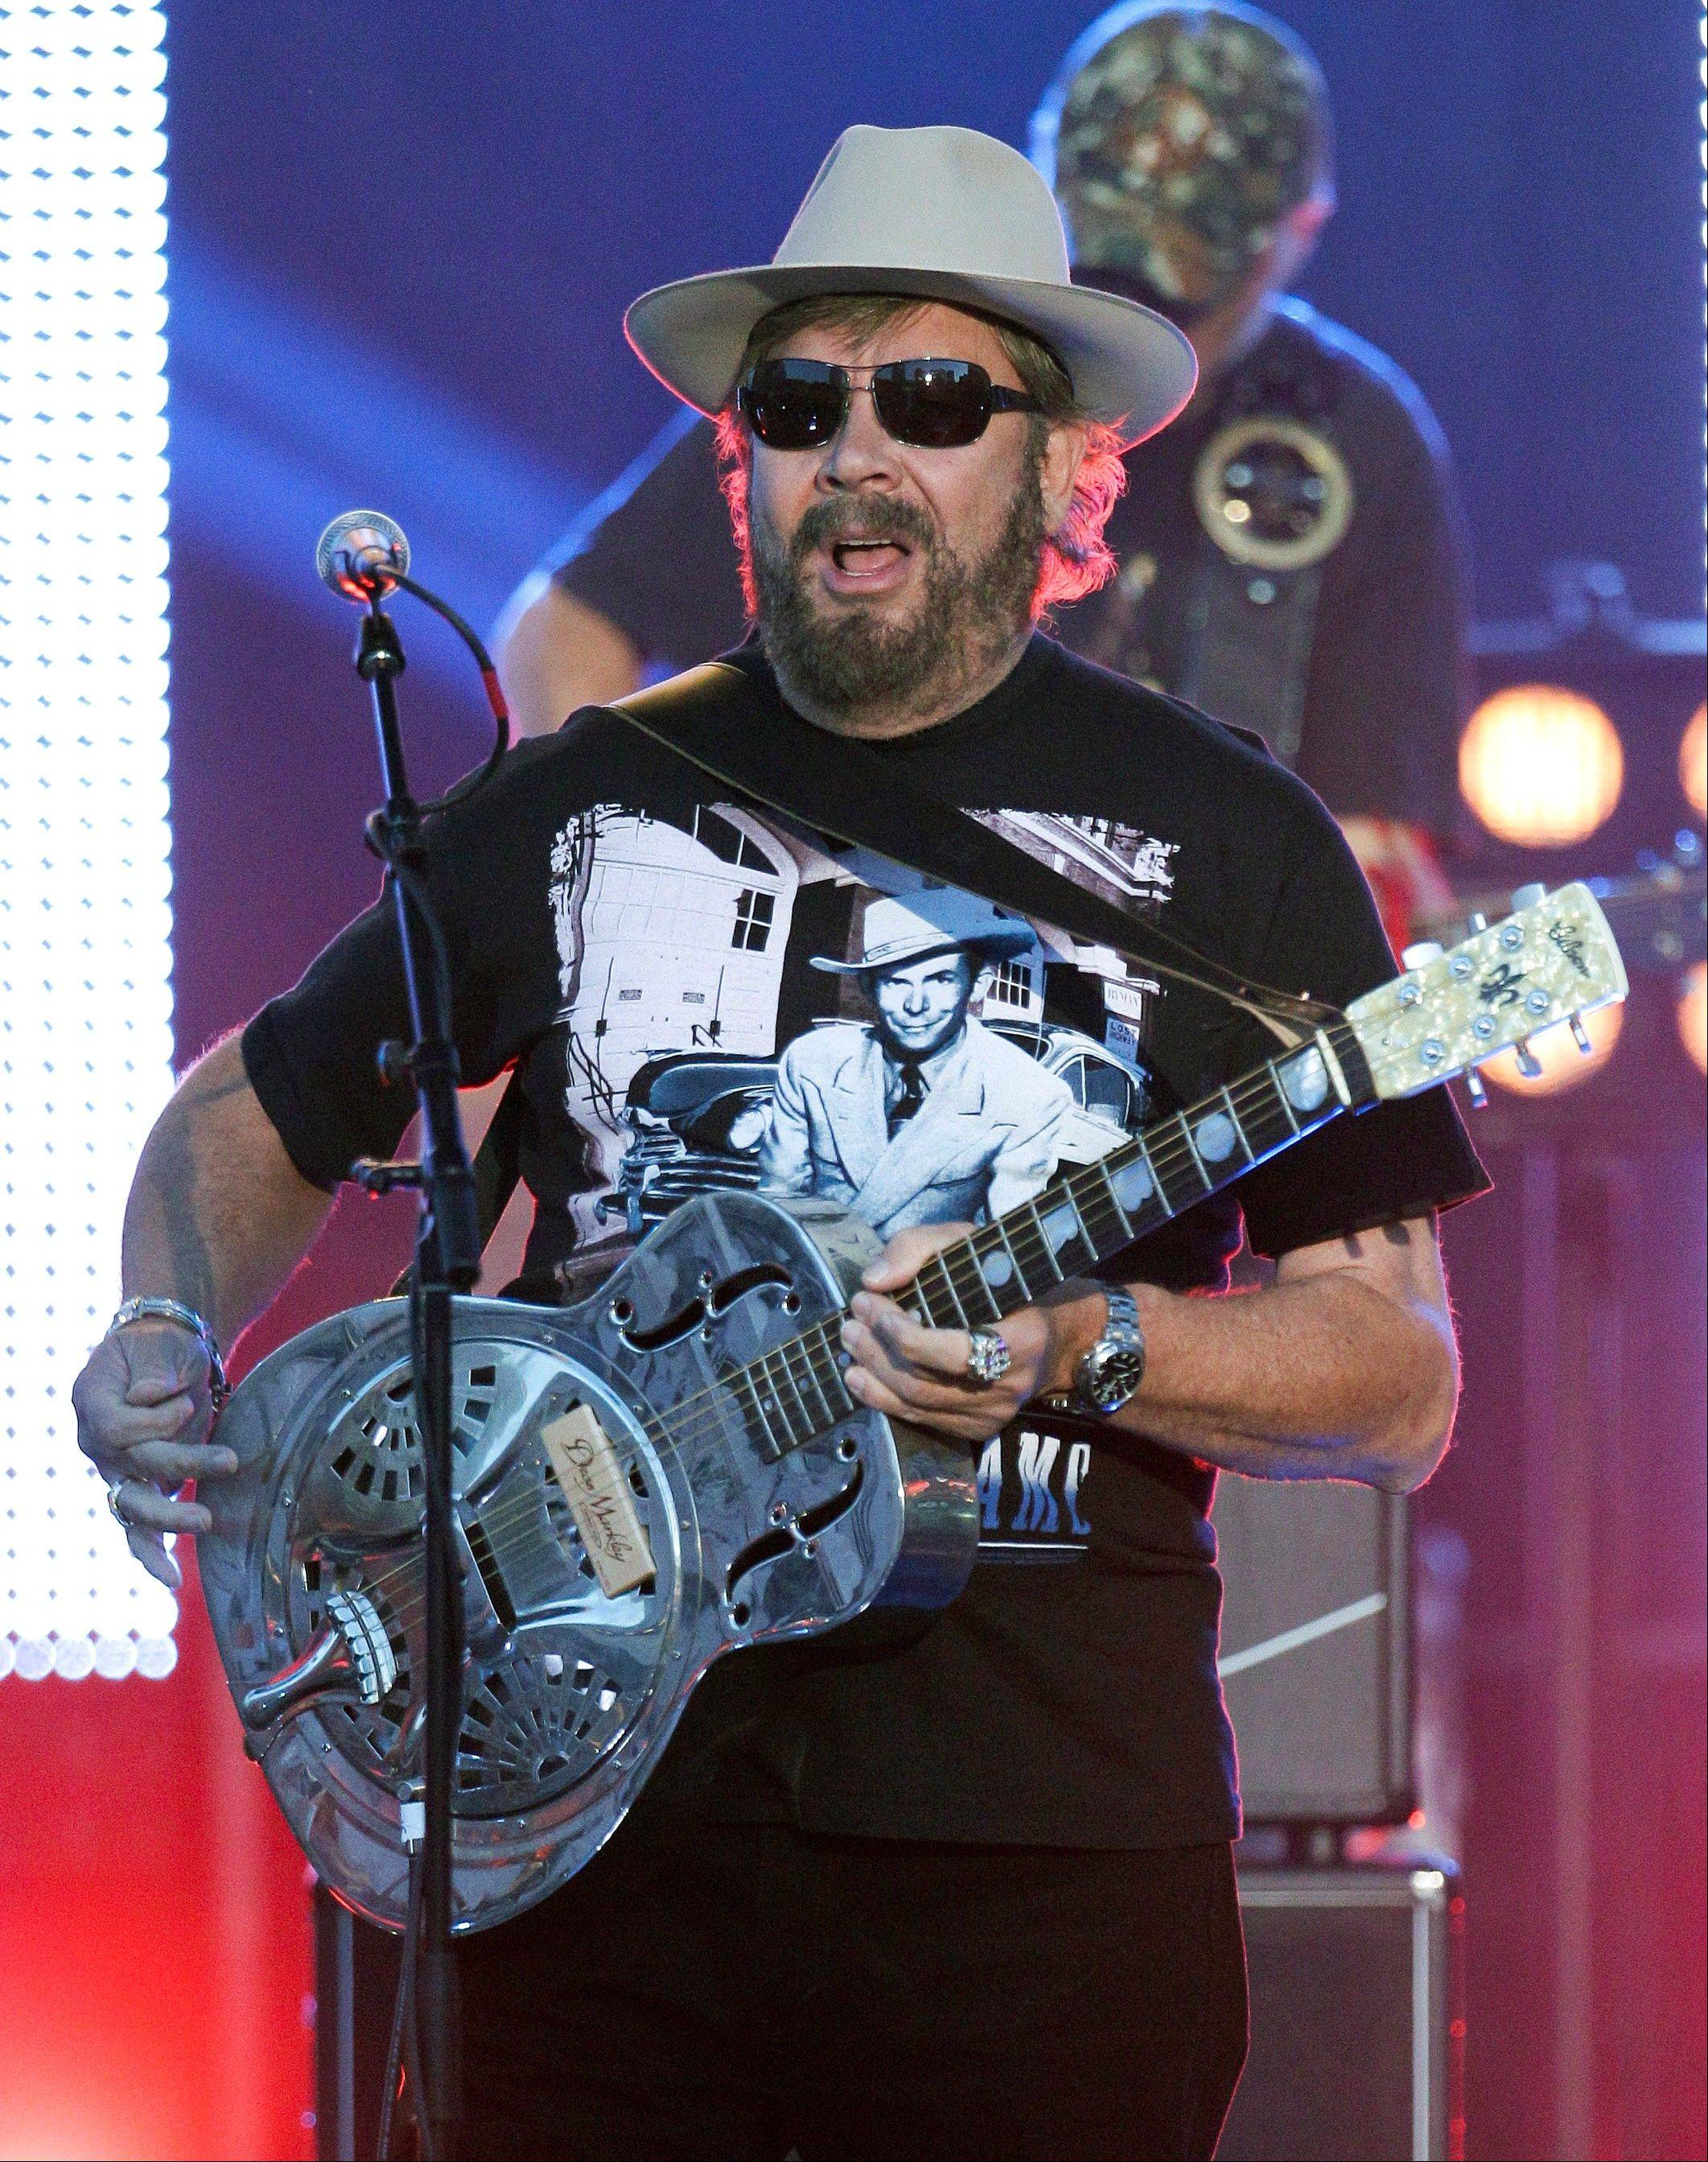 Hank Williams Jr. performs on an outdoor stage during the CMT Music Awards show on Wednesday, June 6, 2012, in Nashville, Tenn.